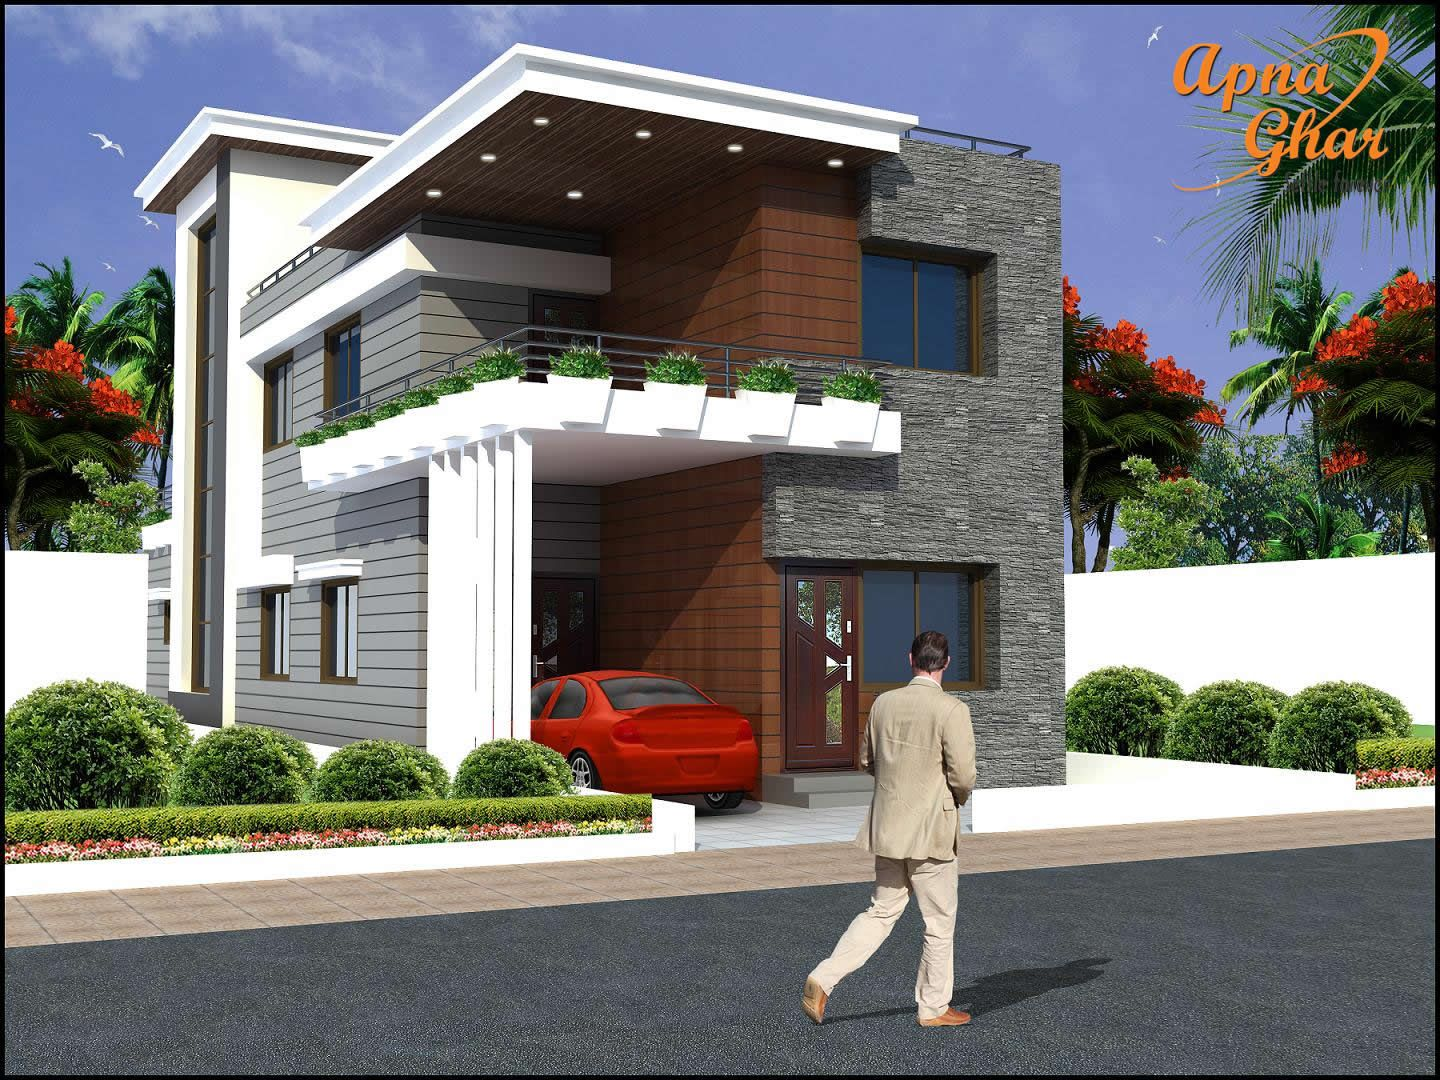 Pin by apnaghar on apanghar house designs duplex house - Indian house exterior design pictures ...